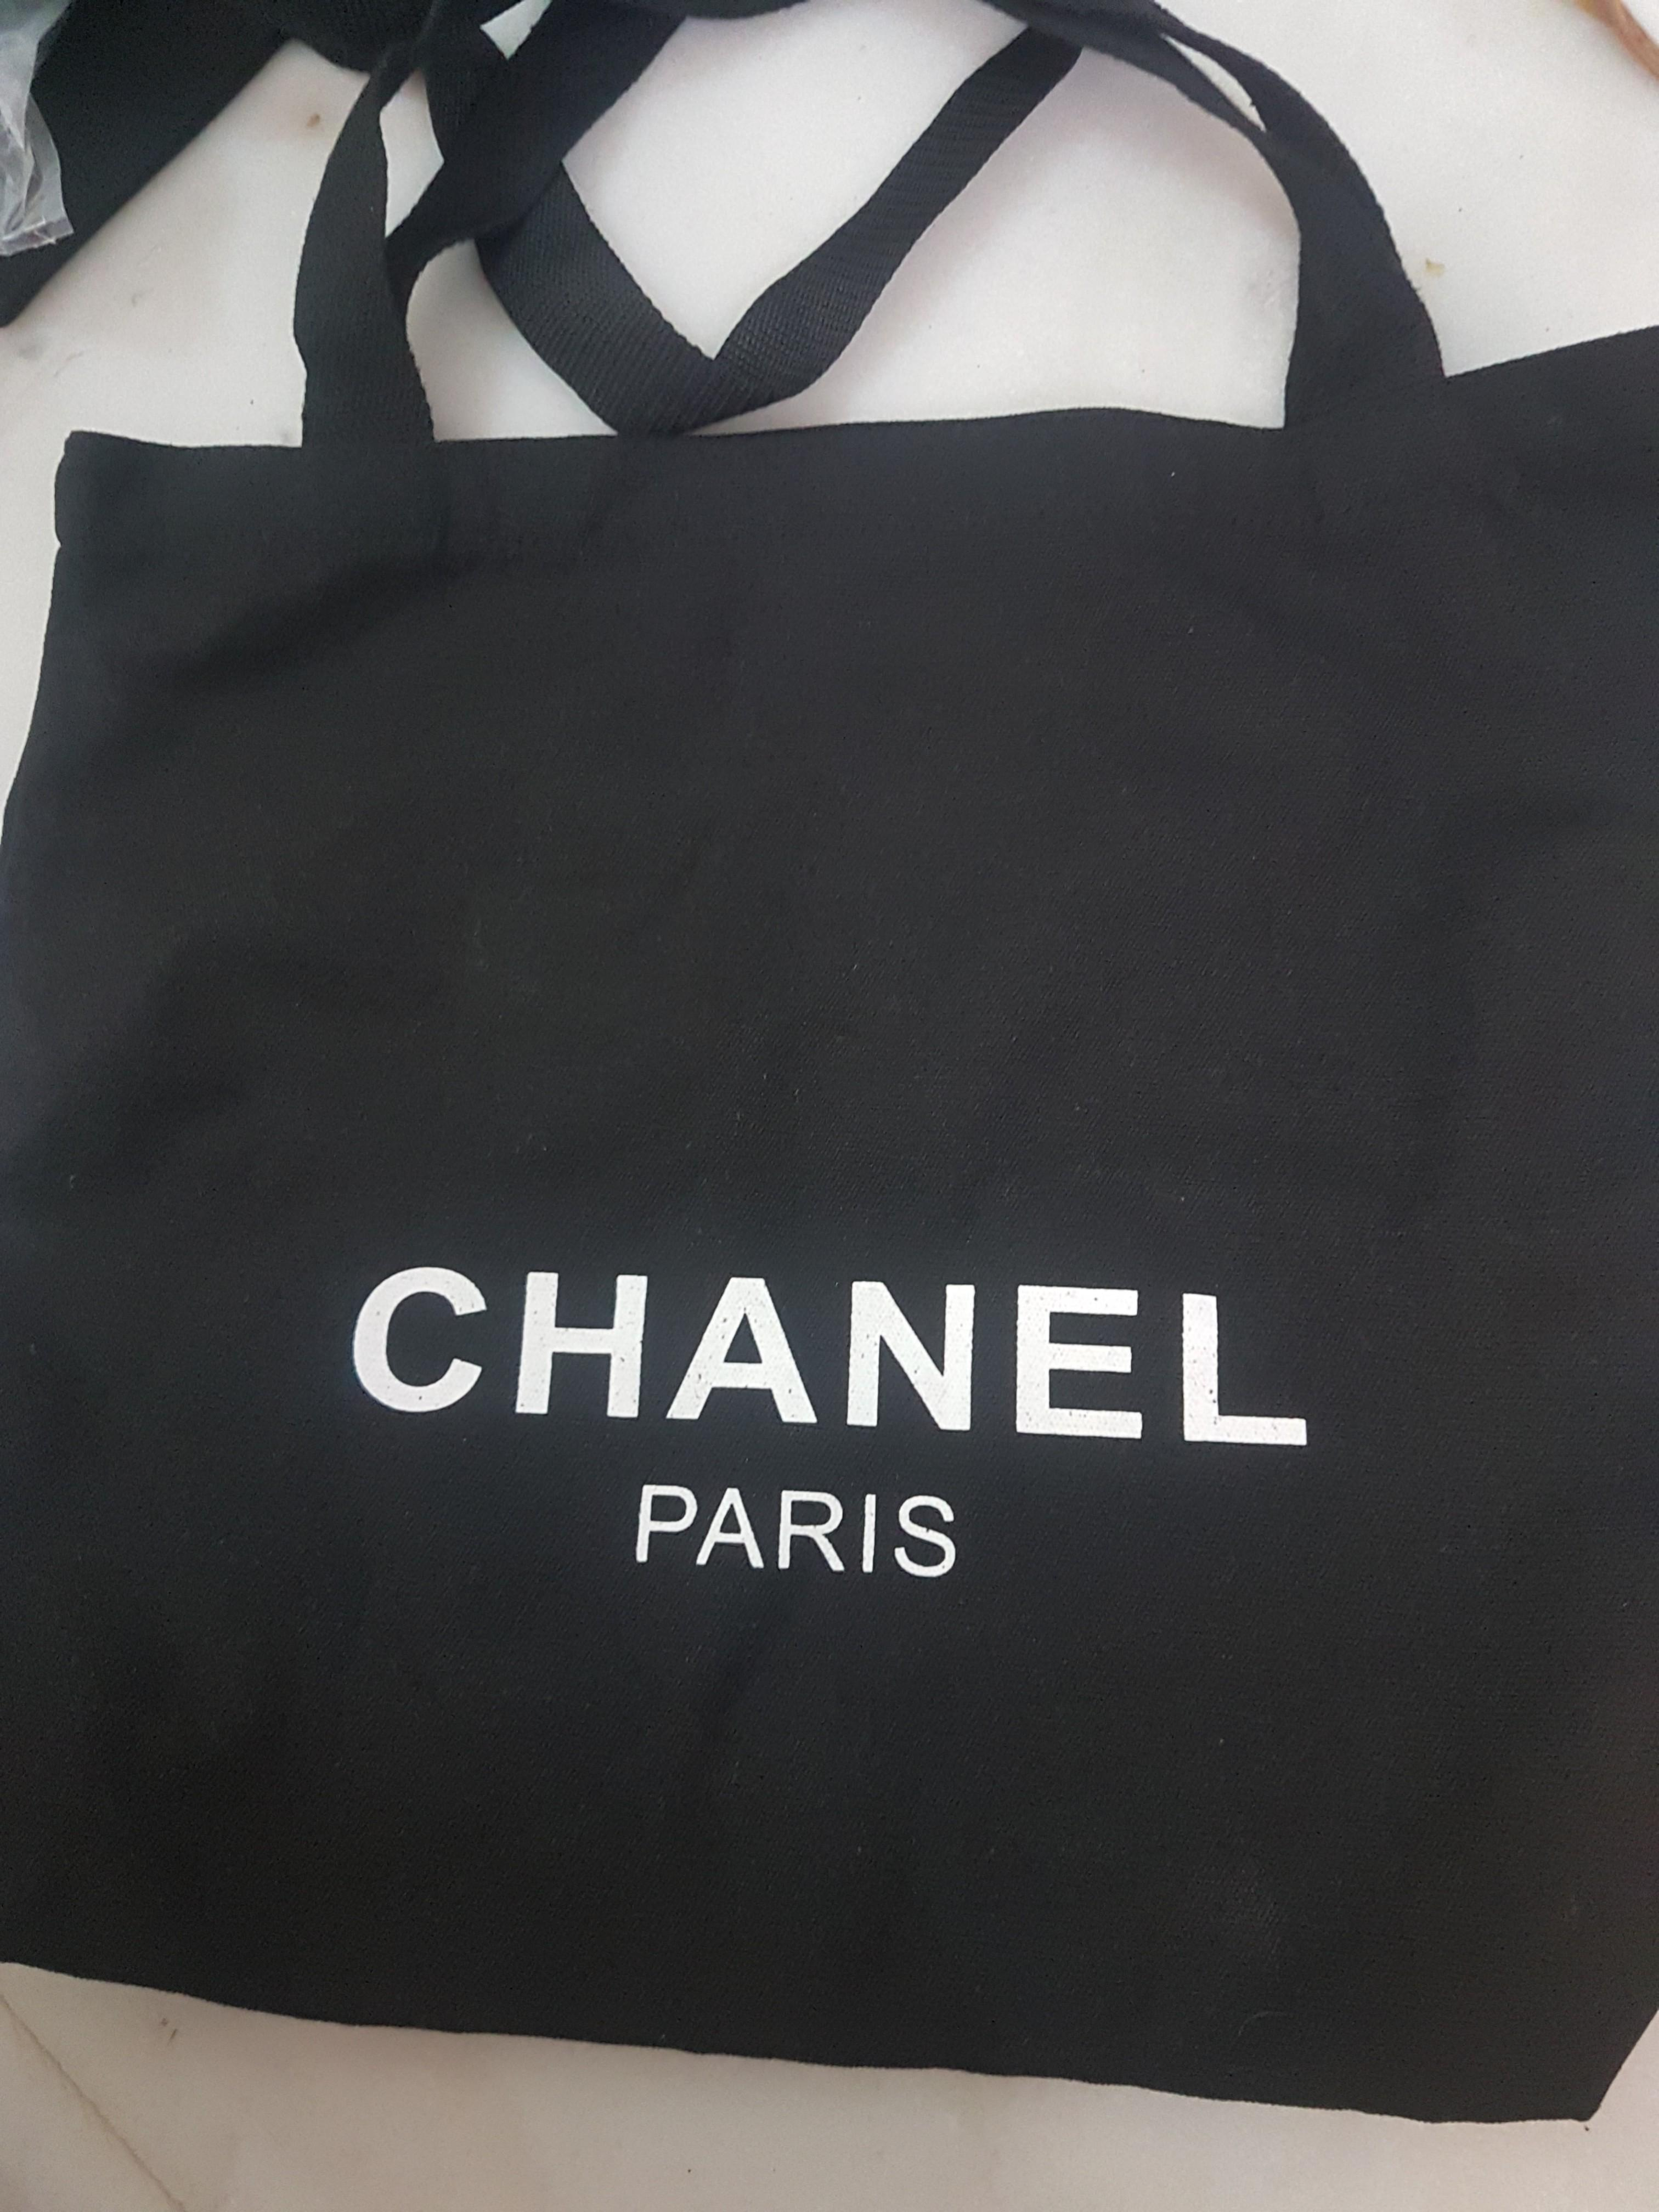 New Chanel Canvas Tote Bag